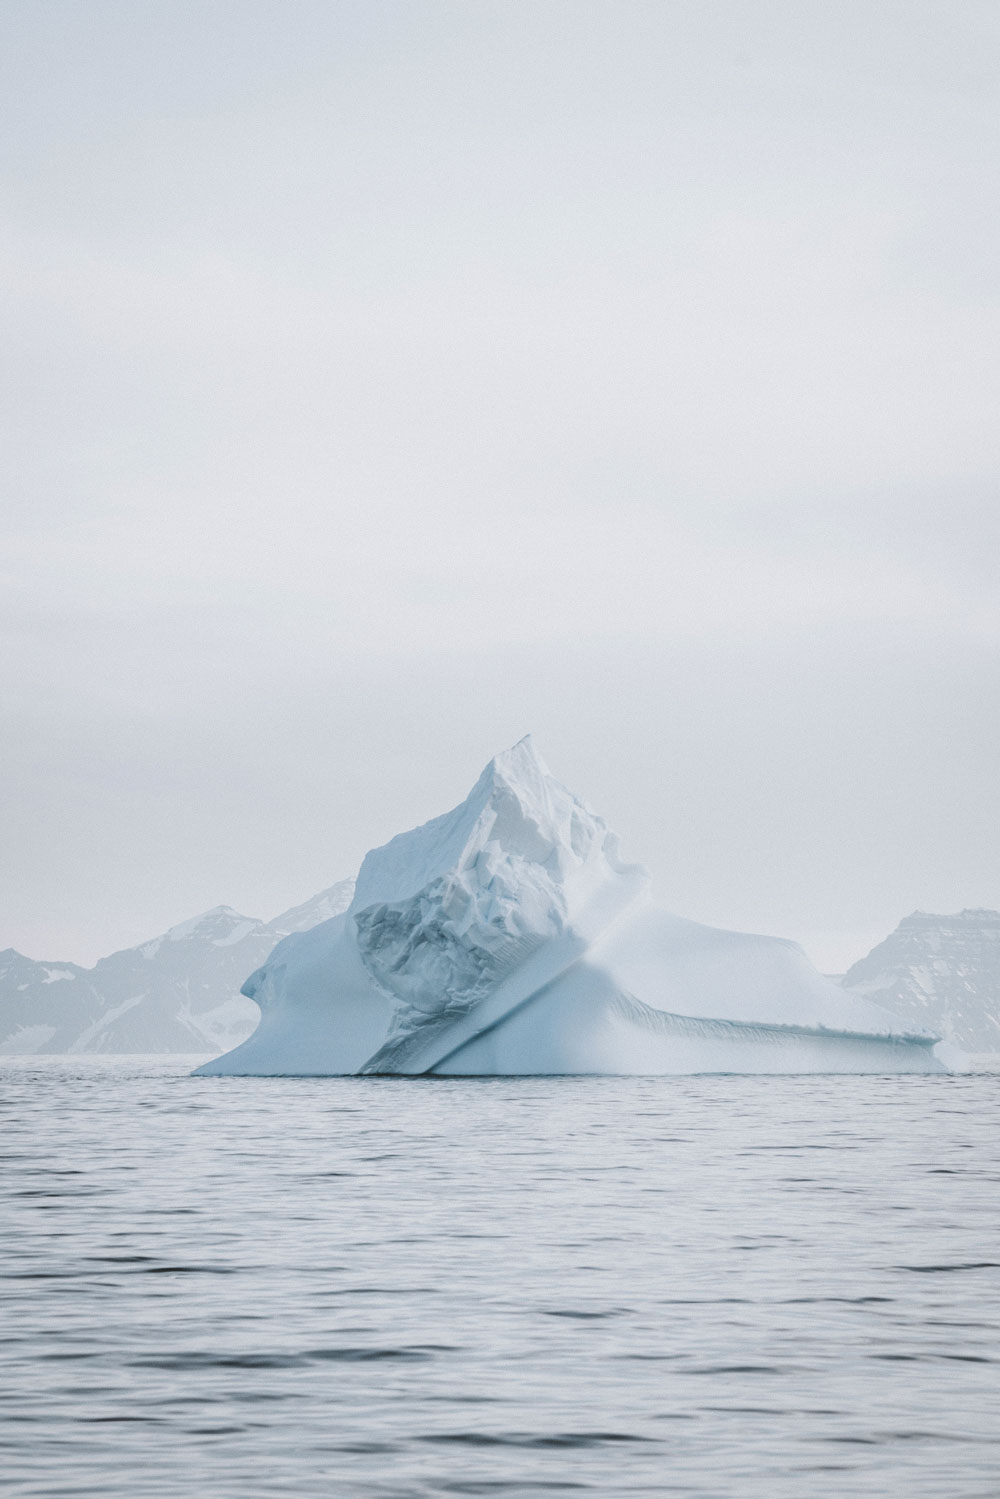 Iceberg surrounded by the sea